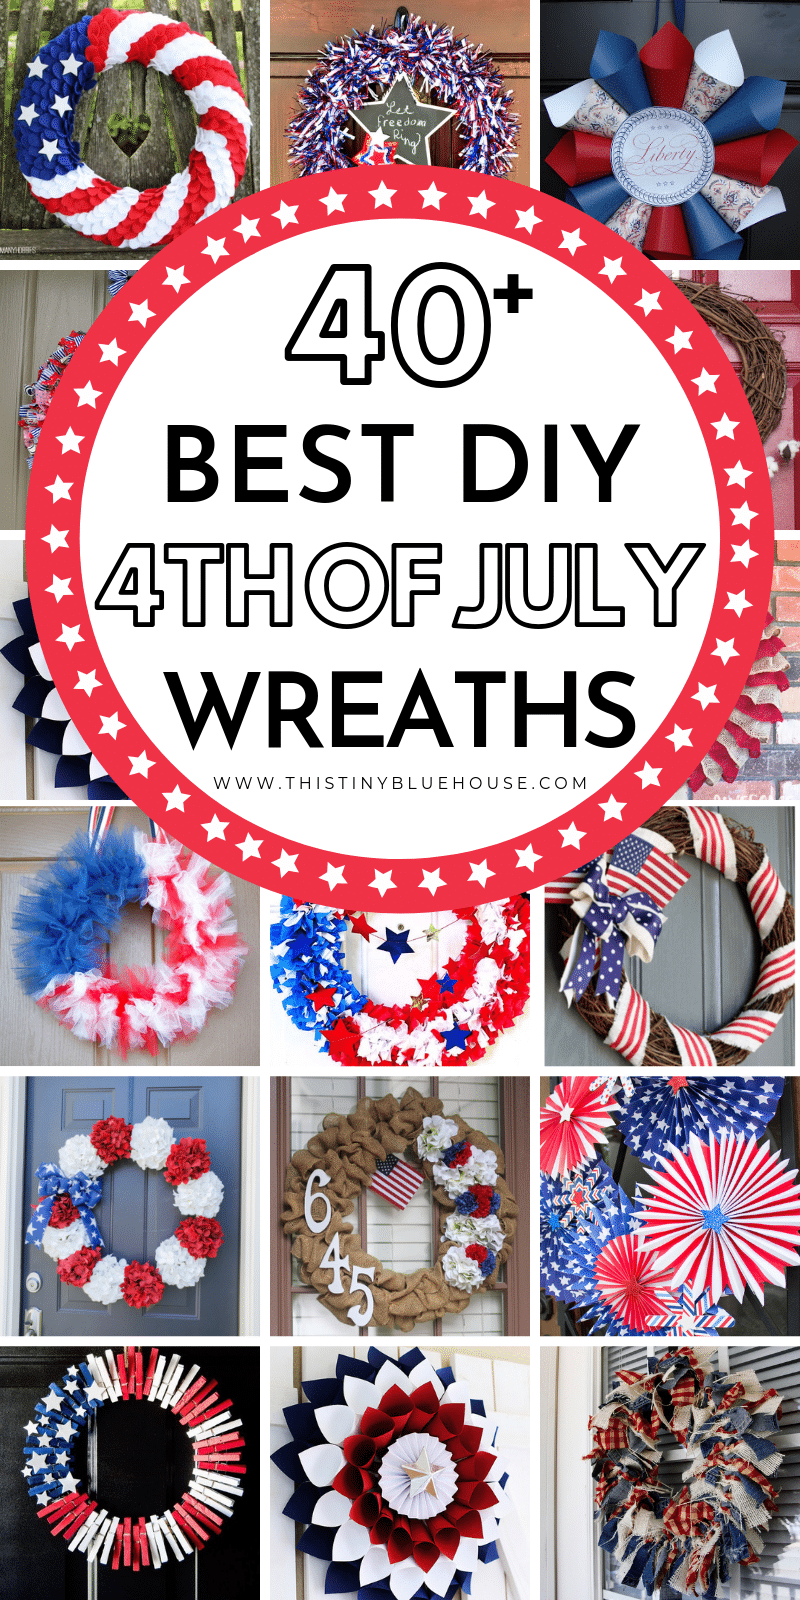 Here are over 40 gorgeous patriotic DIY dollar store 4th of July Wreaths that are the perfect addition to your front door for Independence Day. #independenceday #4thofjuly #diy4thofjulywreath #diyindependencedaywreath #patrioticwreathdiy #diy4thofjulydecor #diy4thofjulydecor